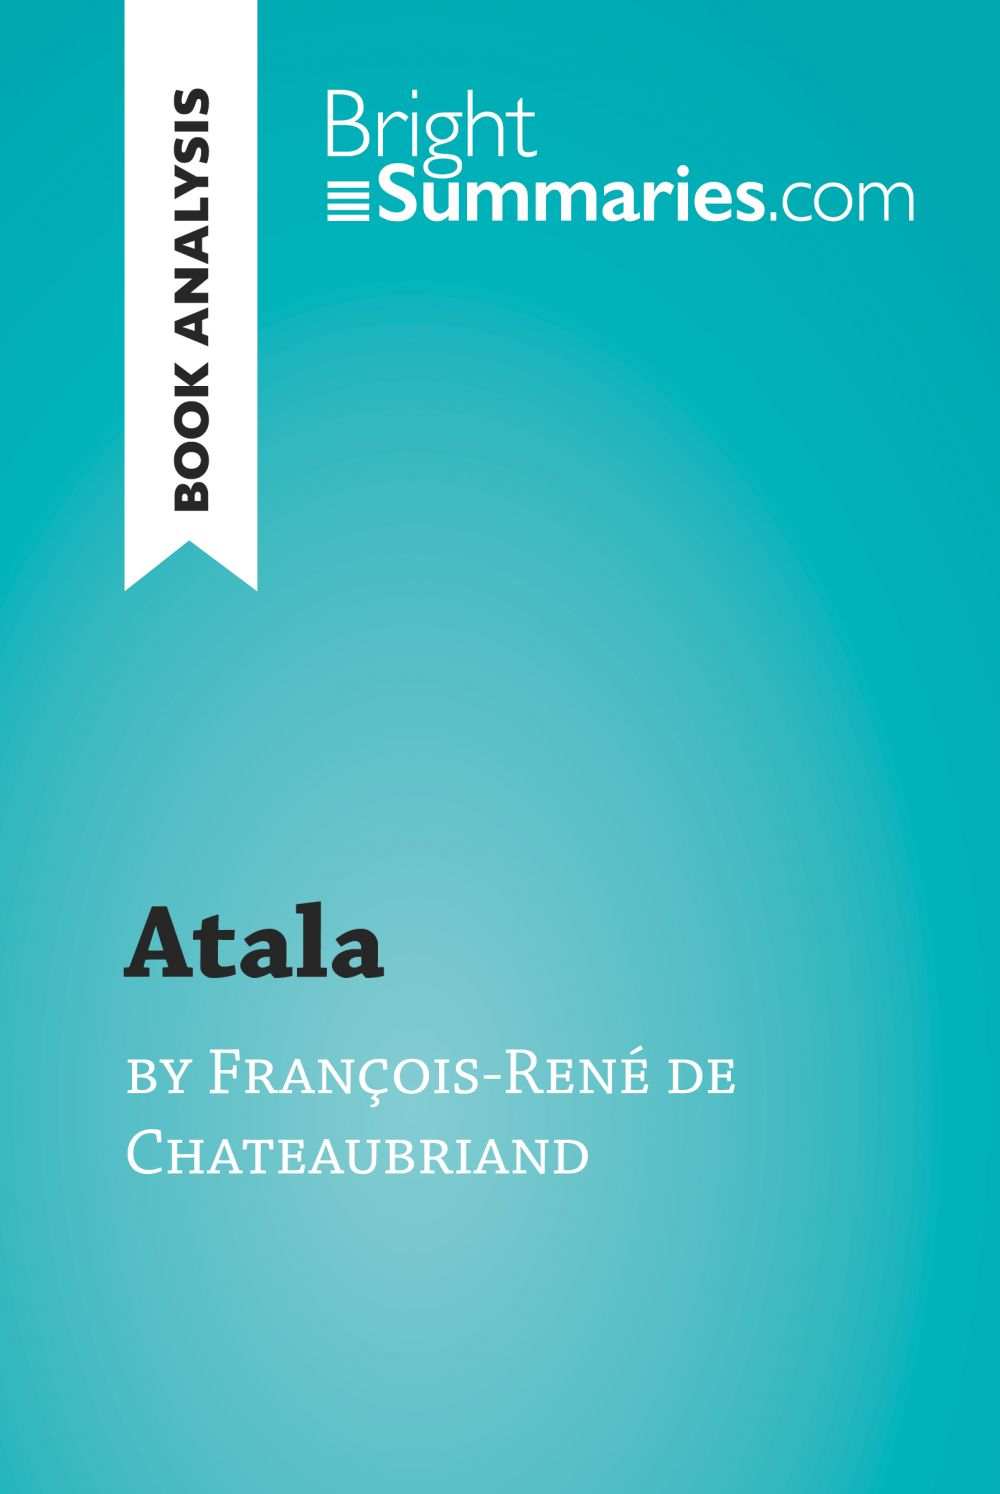 Atala by François-René de Chateaubriand (Book Analysis)